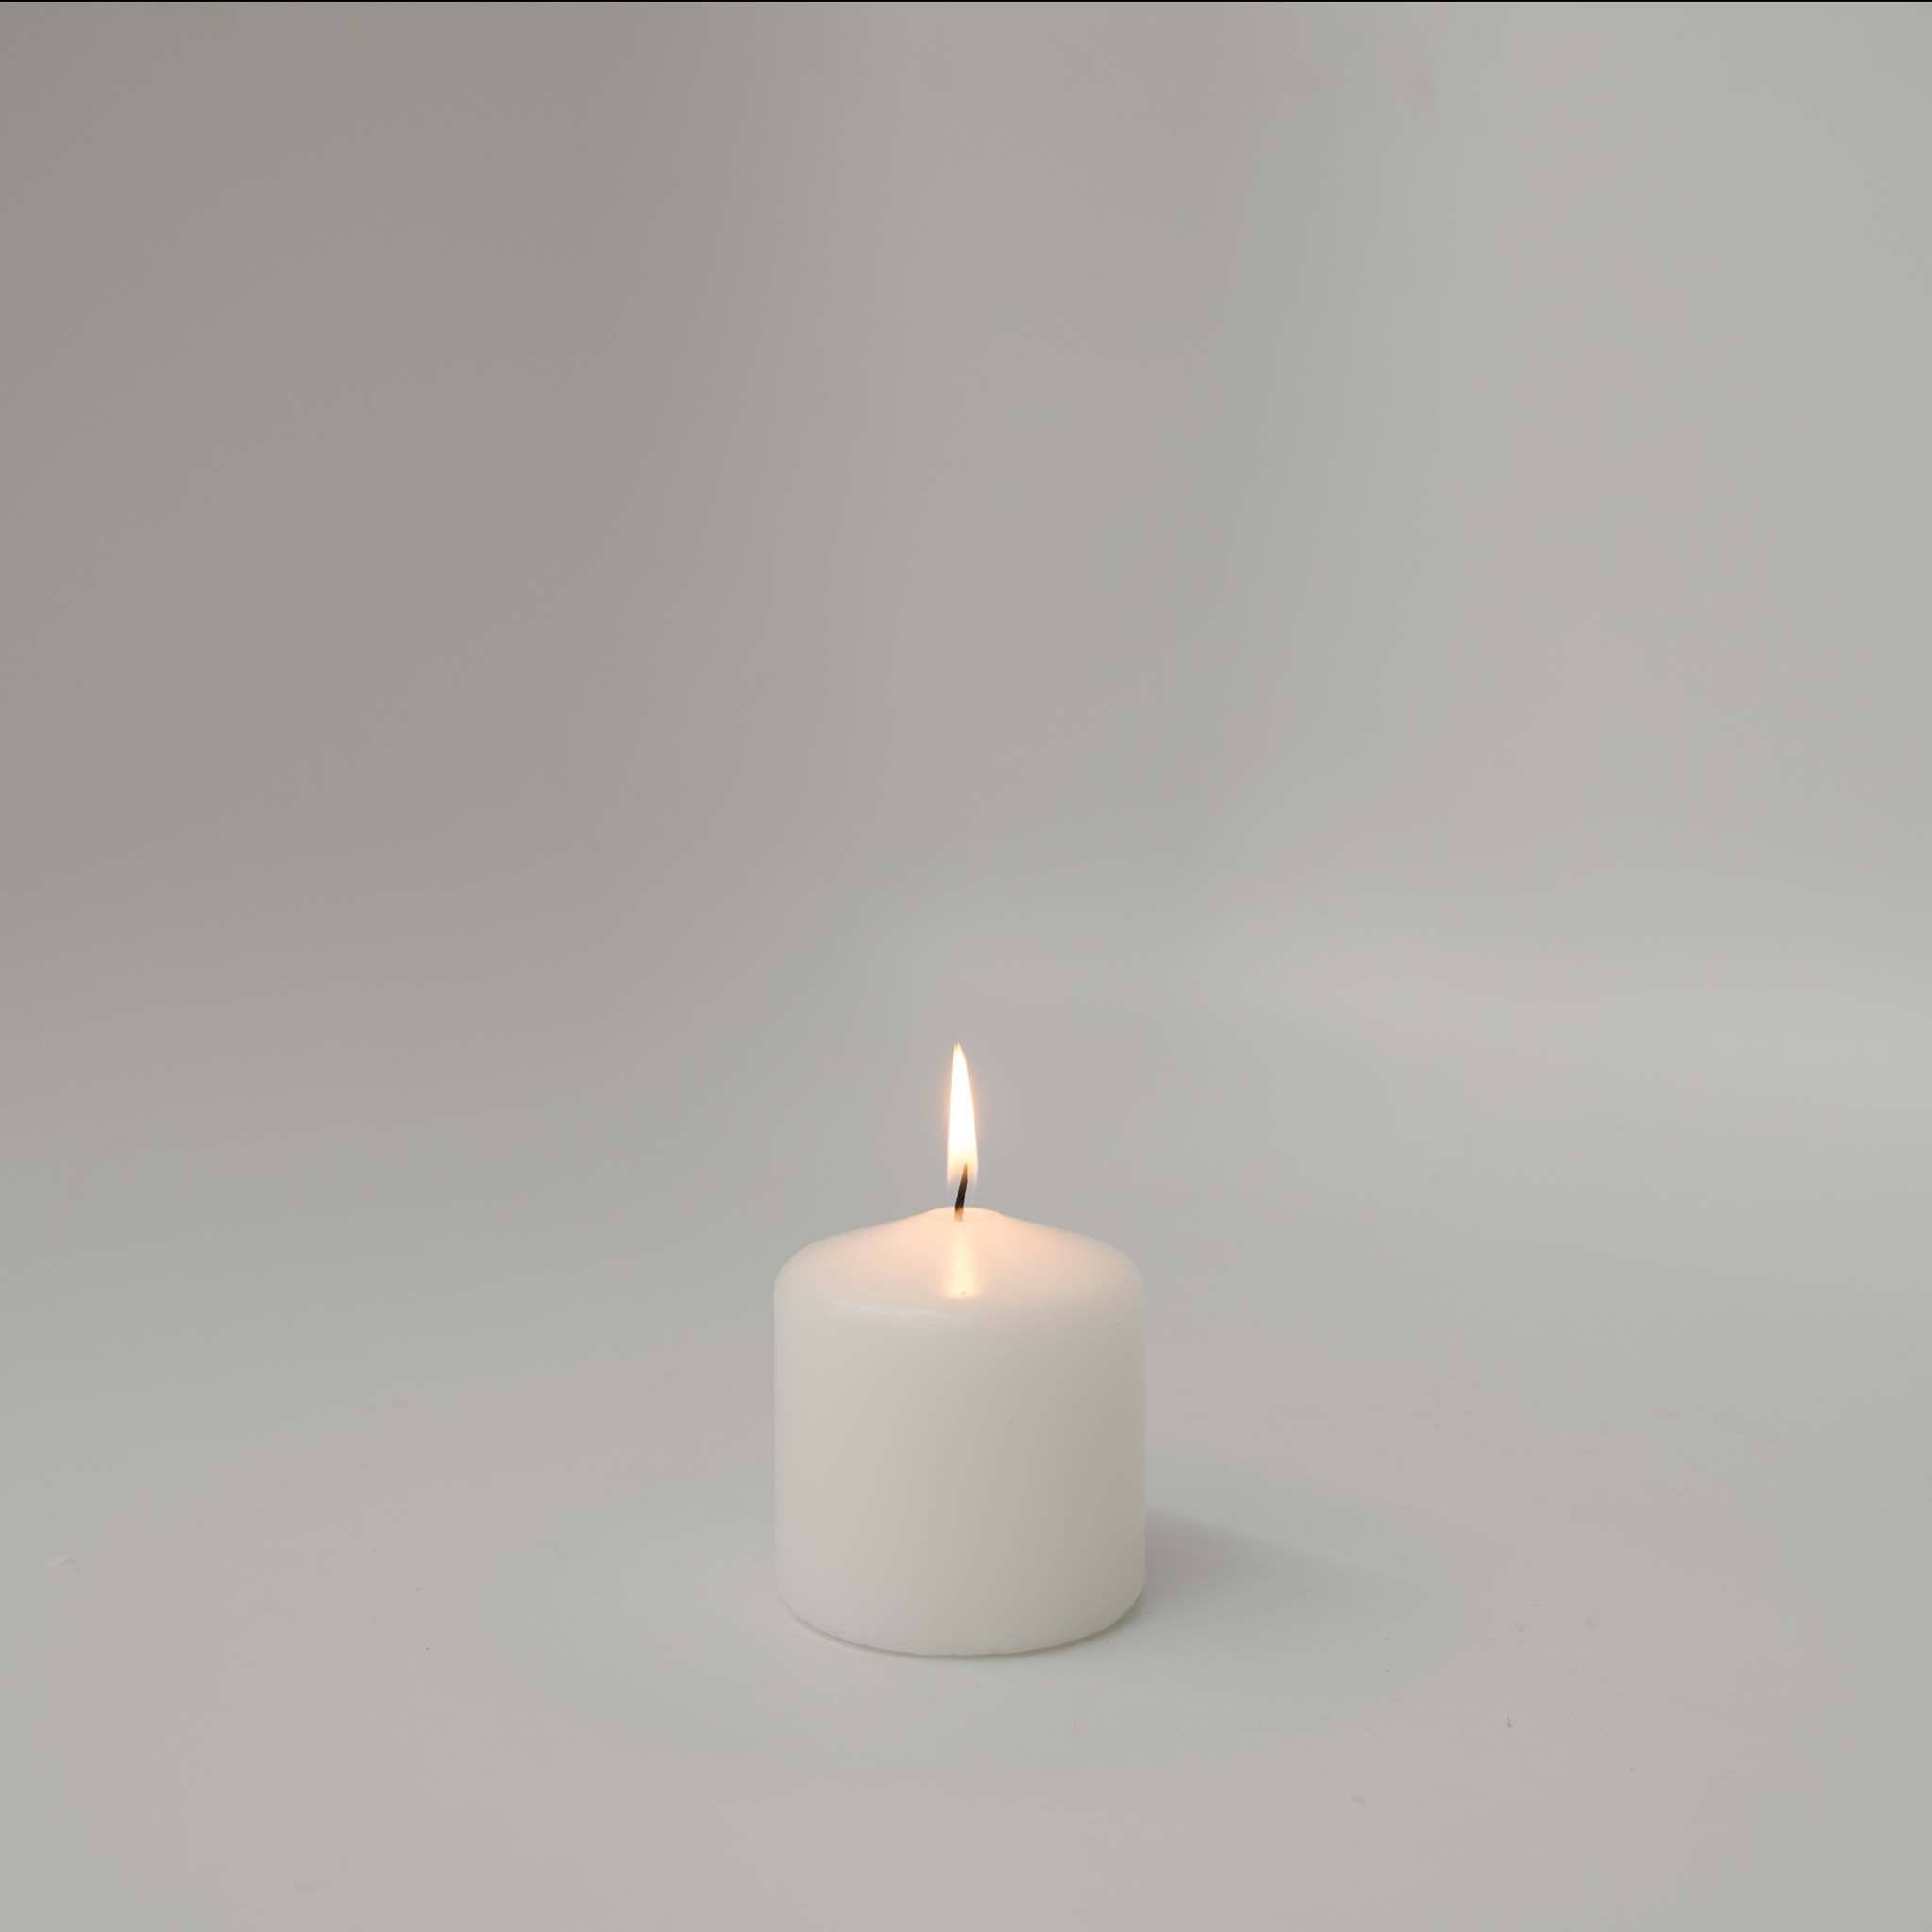 3x3 Unscented White Pillar Candle - Candlemart.com